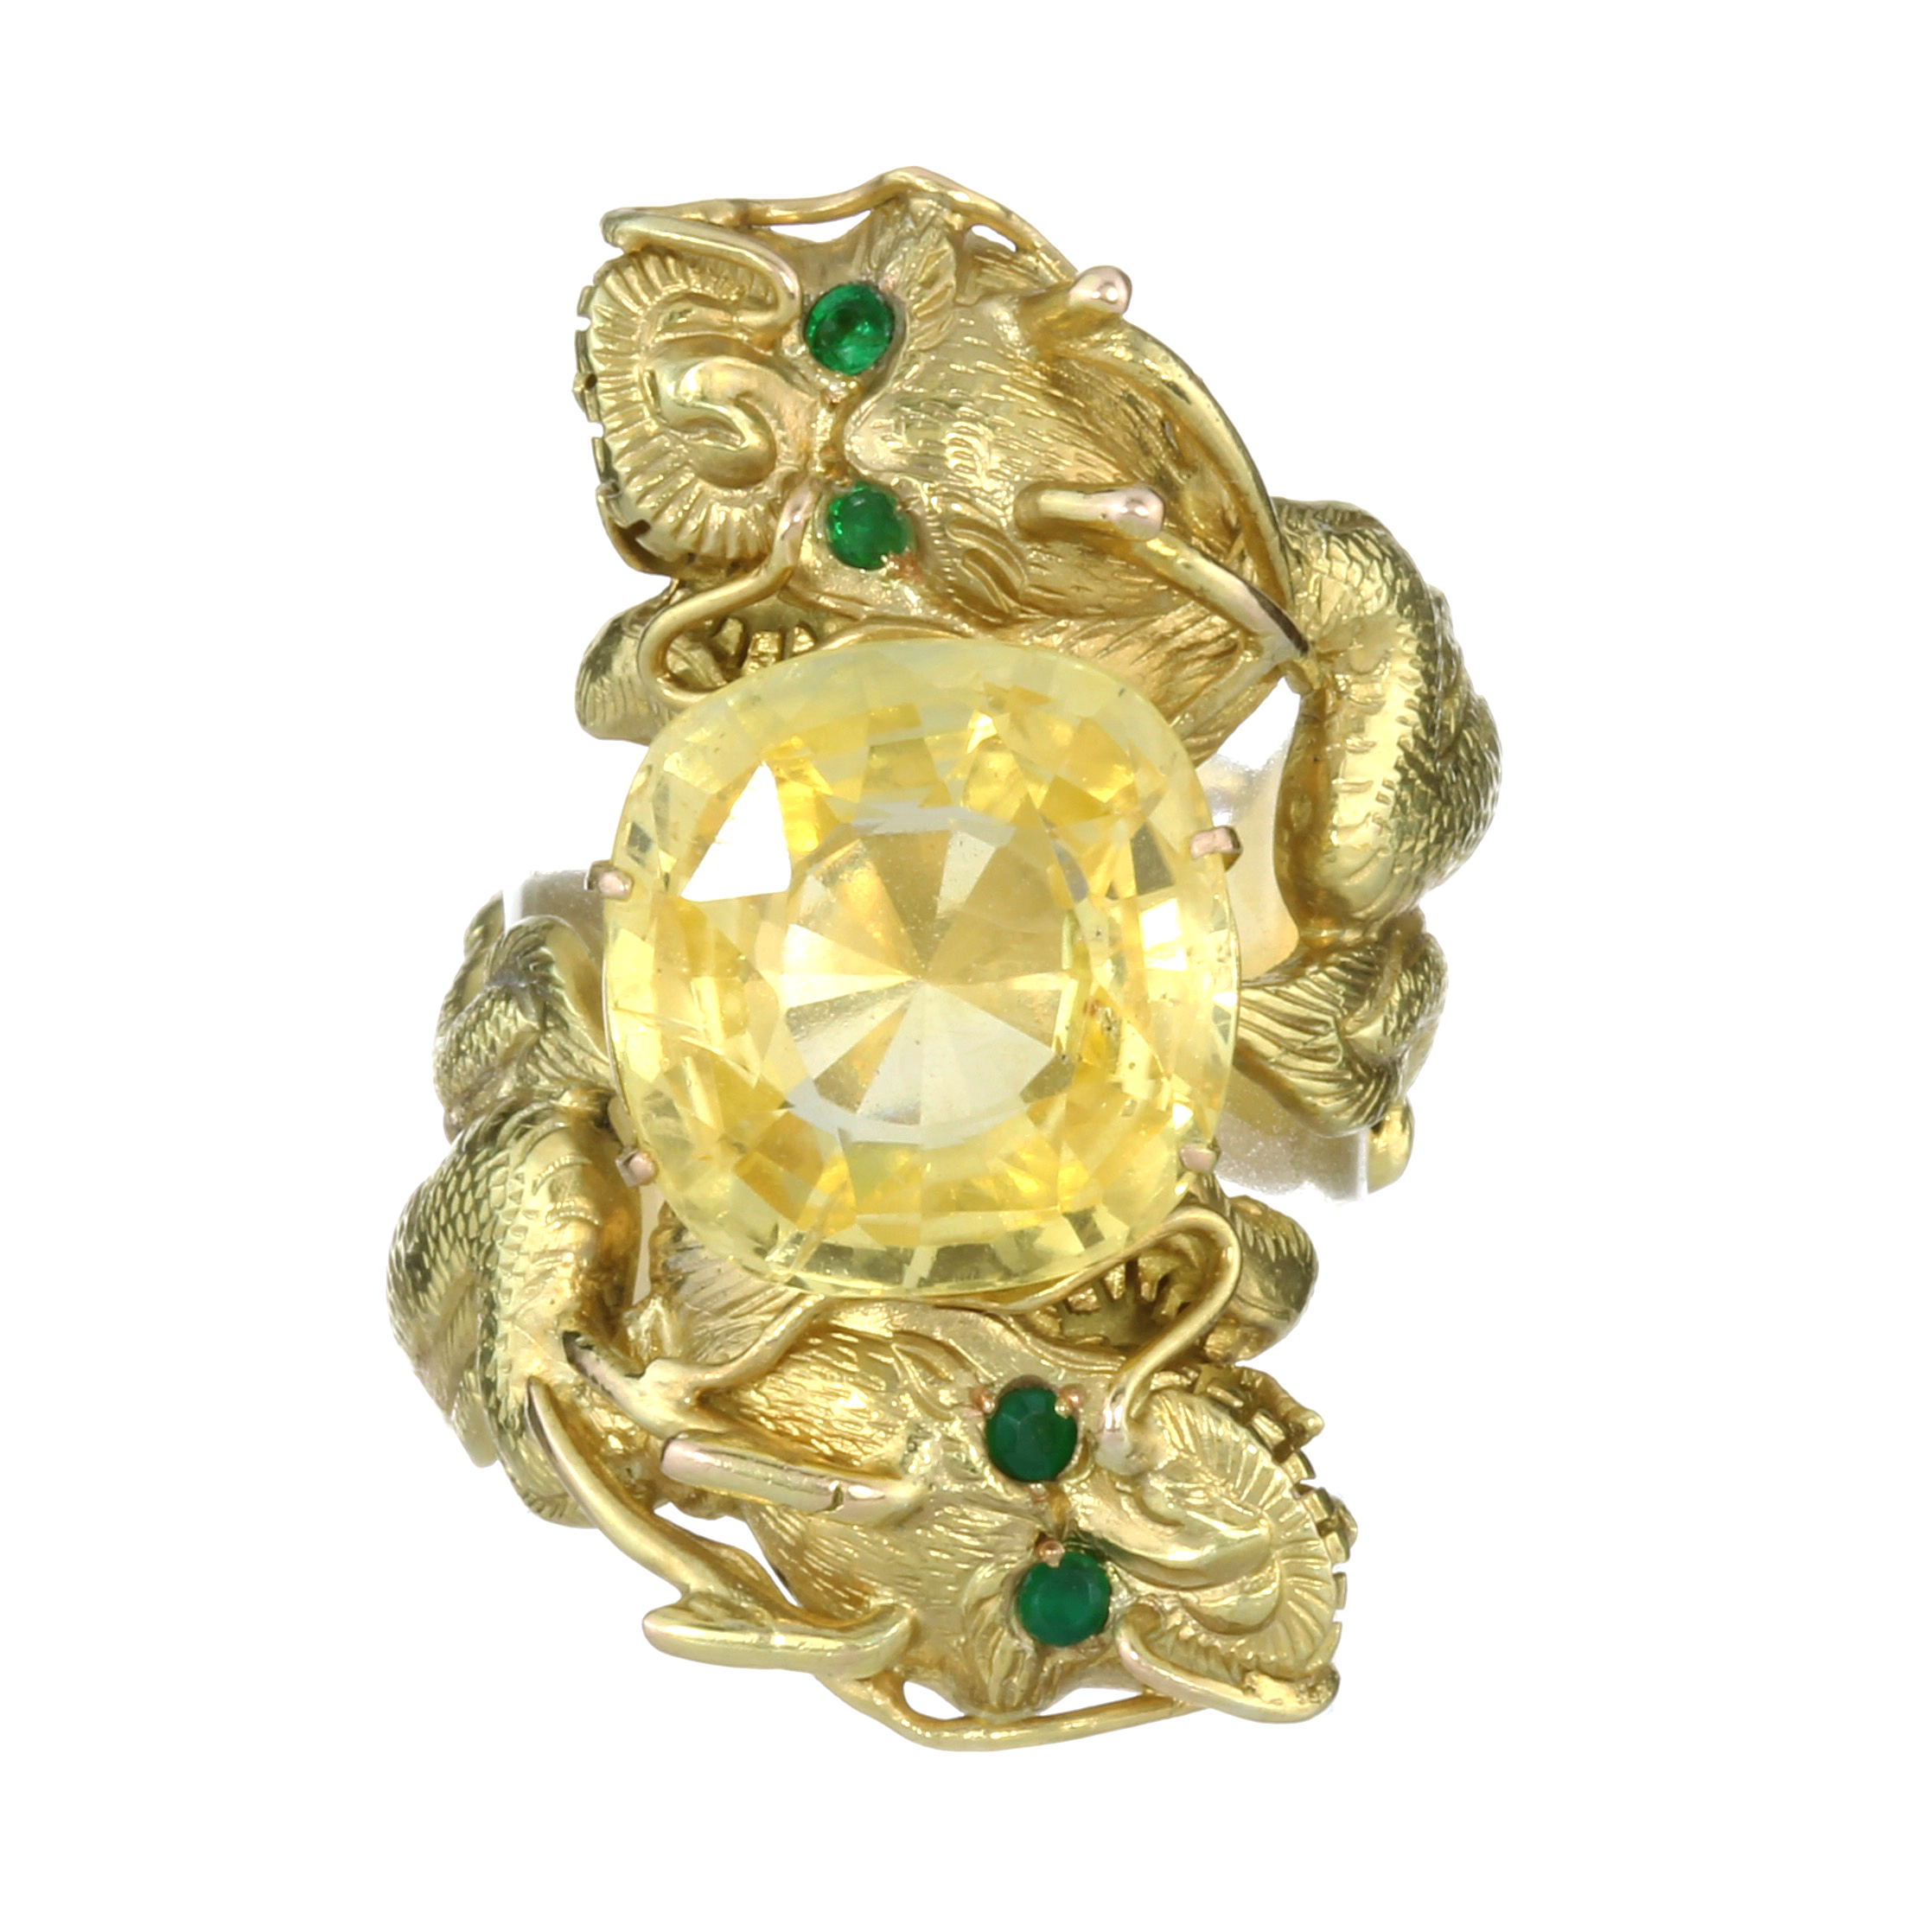 Los 55 - A 10.84 CARAT CEYLON NO HEAT YELLOW SAPPHIRE CHINESE DRAGON RING in yellow gold designed as two